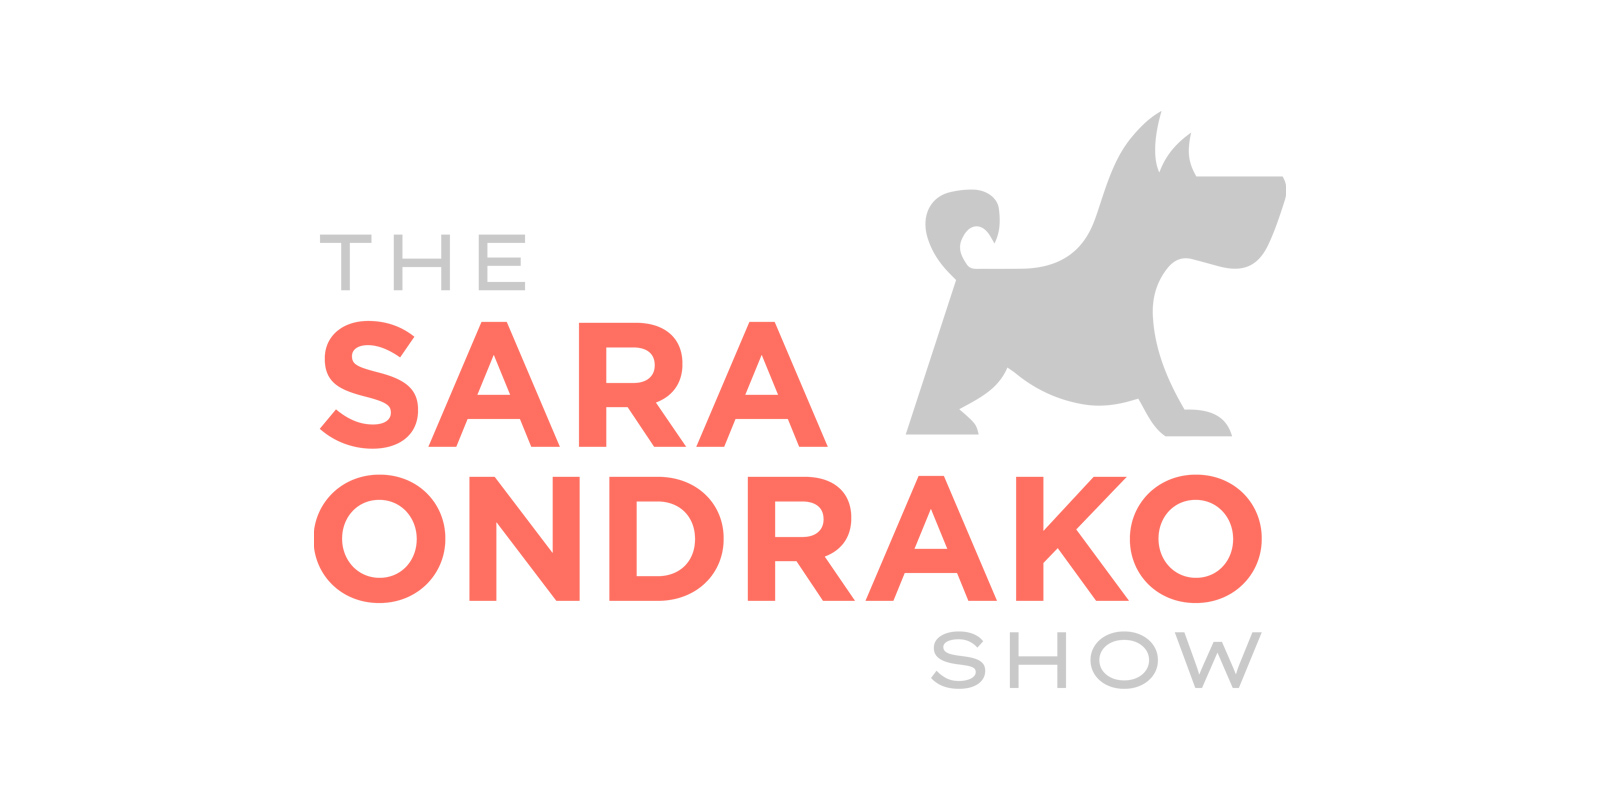 The Sara Ondrako Podcast